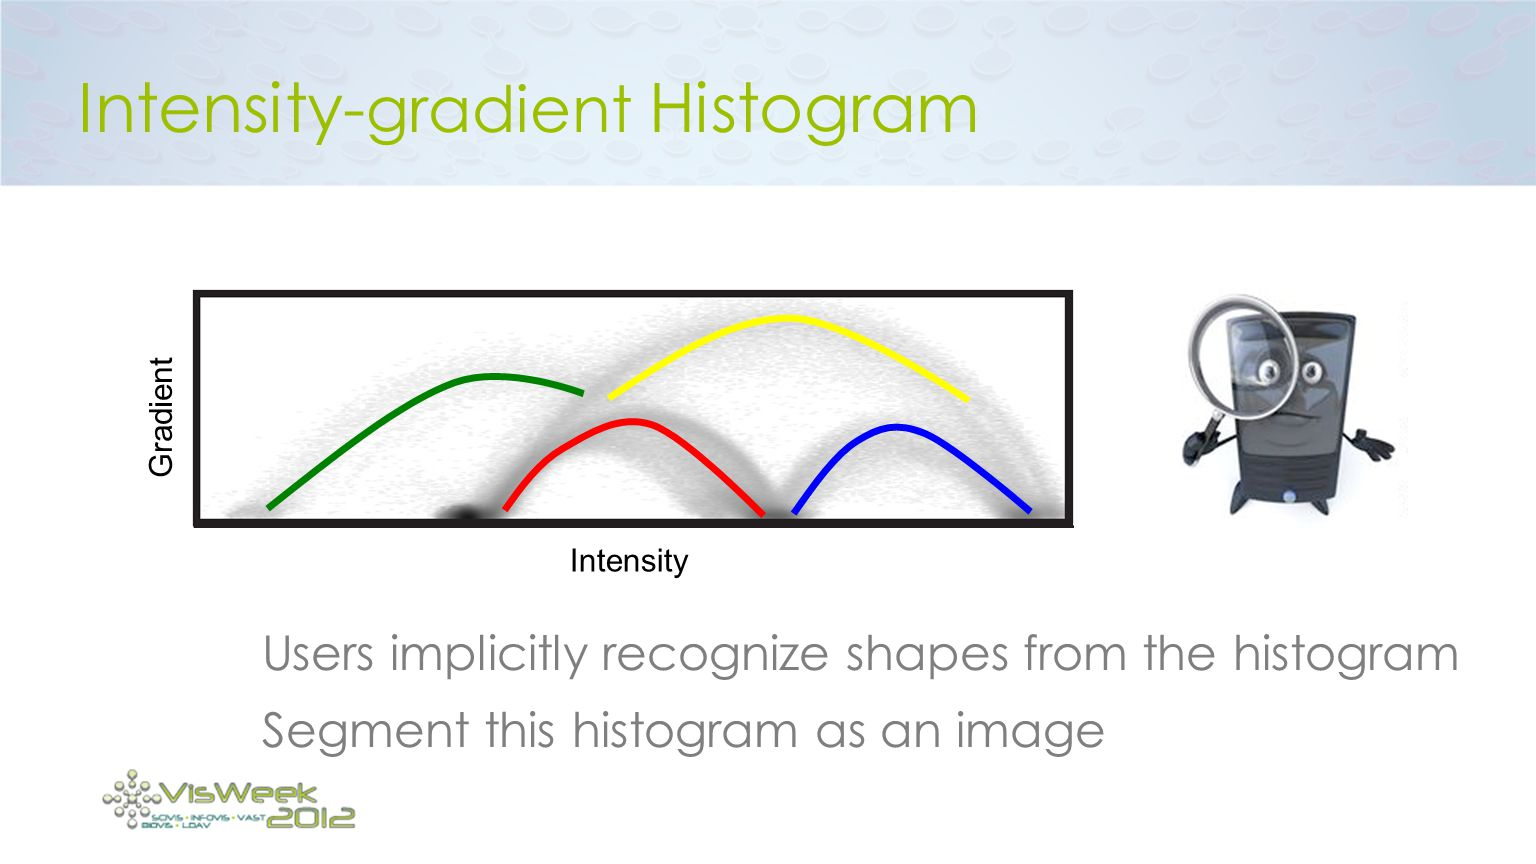 Intensity-gradient Histogram